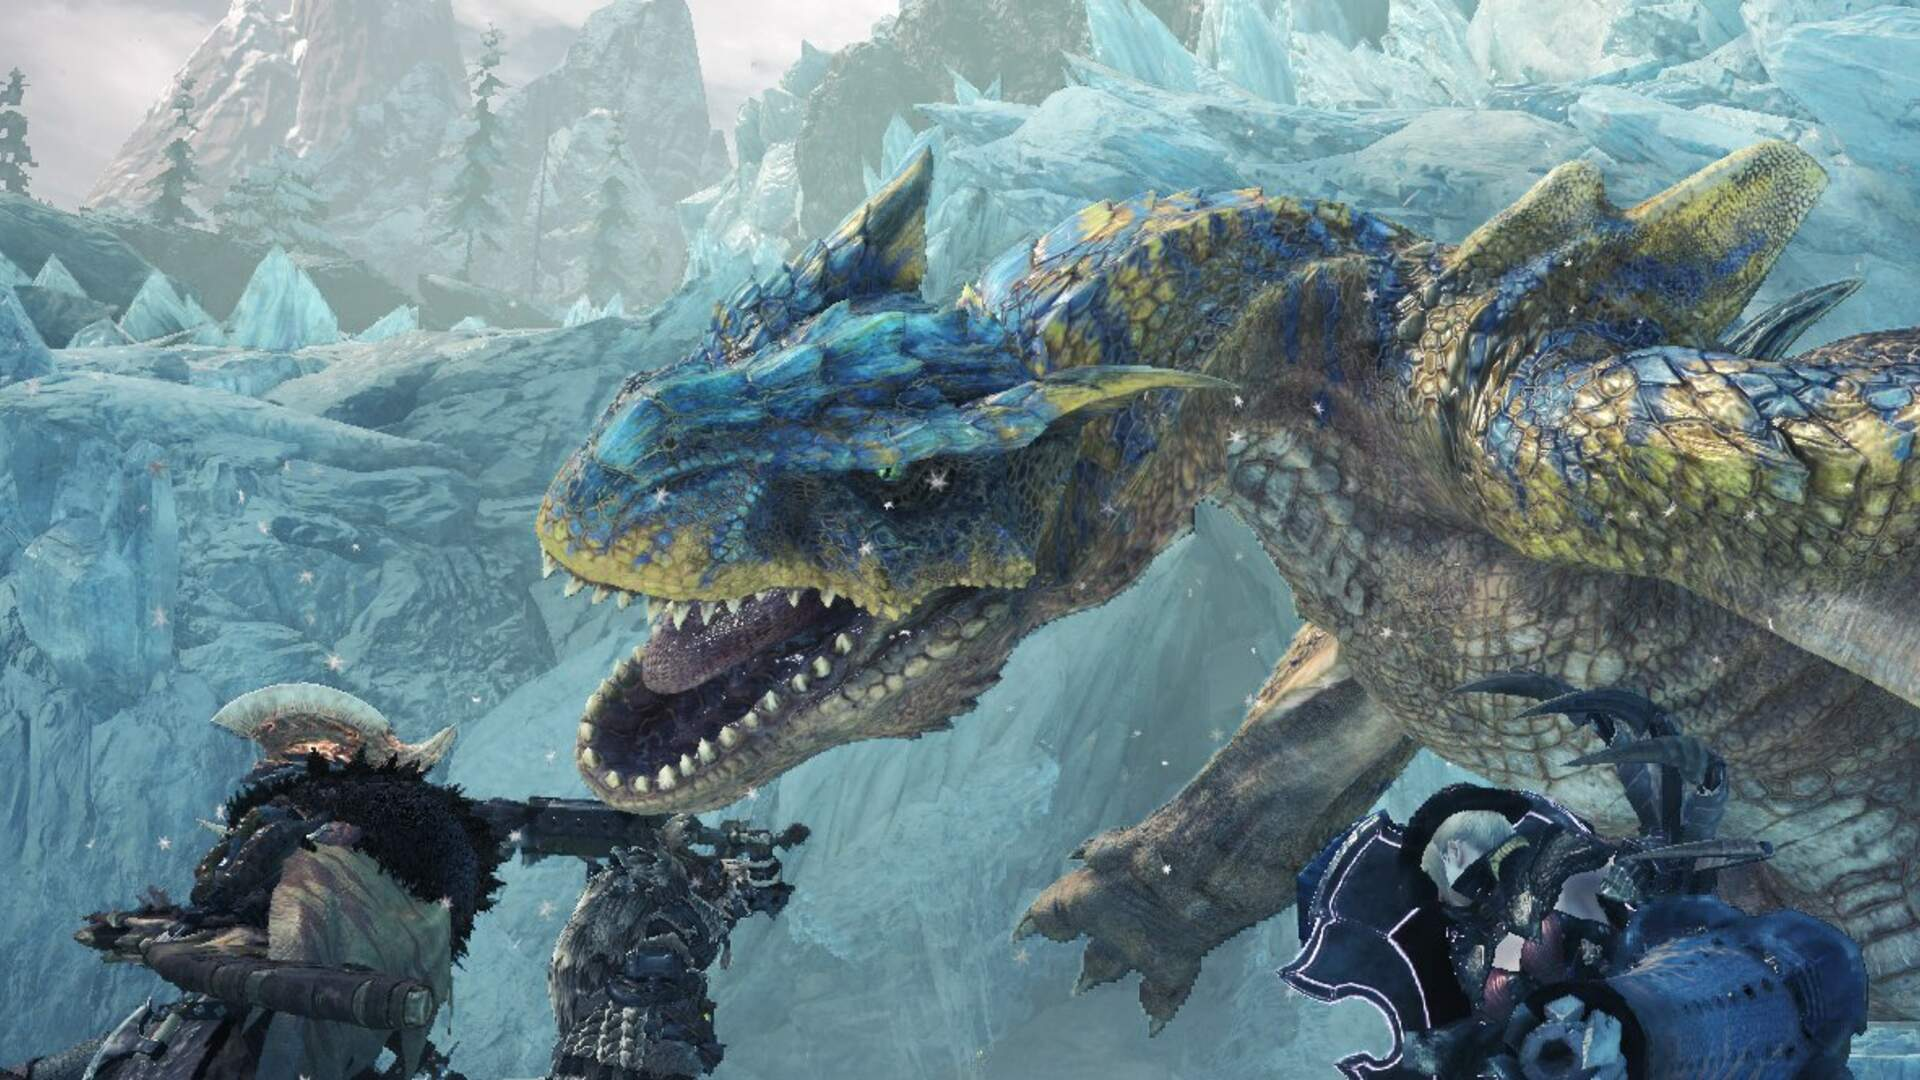 Monster Hunter World: Iceborne Devs on Bumping Up Difficulty, New Flagship Monsters, and Which Weapon Needs the Biggest Boost